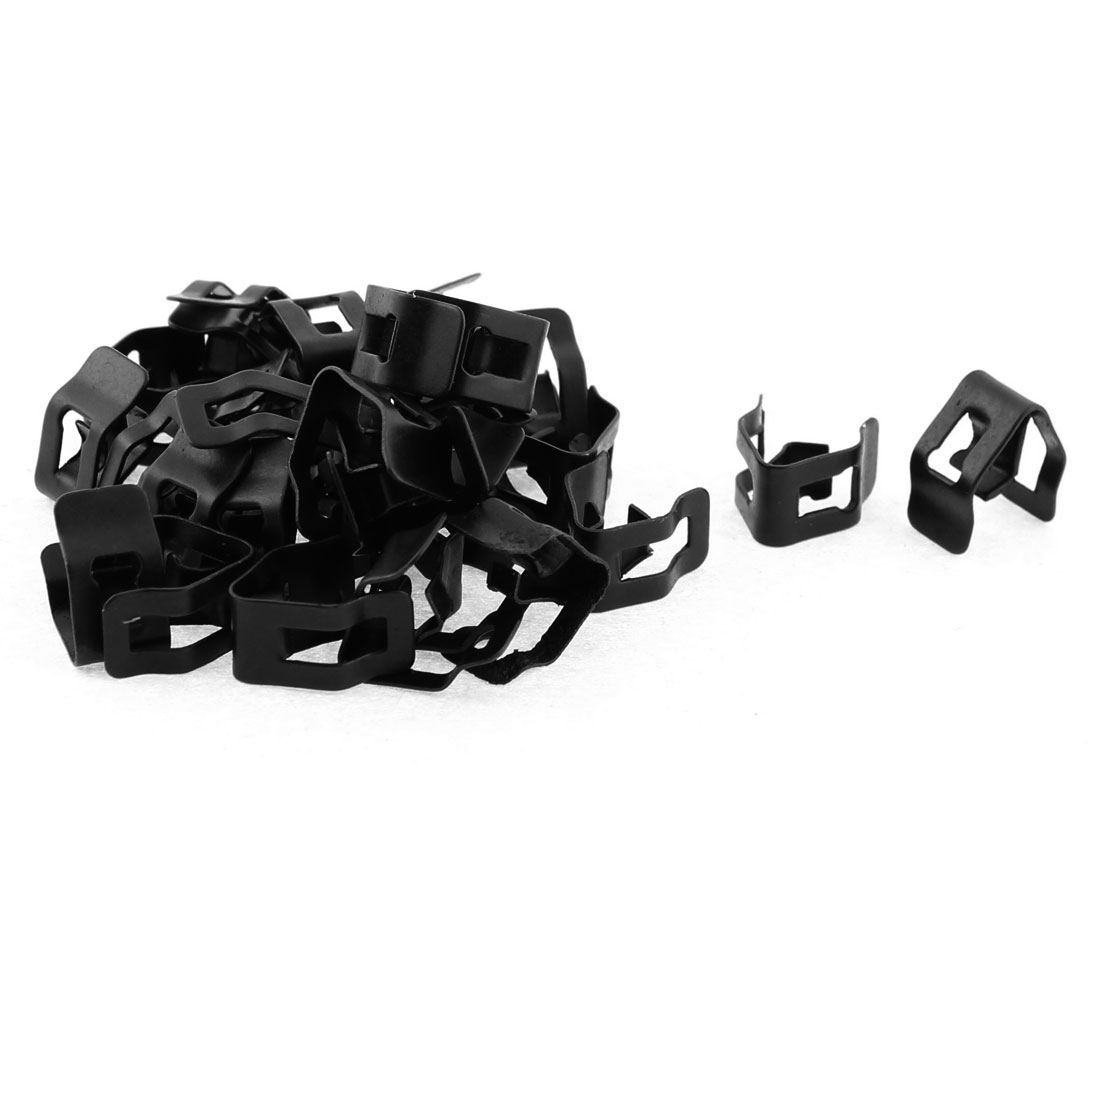 30Pcs Black Auto Car Dash Dashboard Trim Metal Fastener